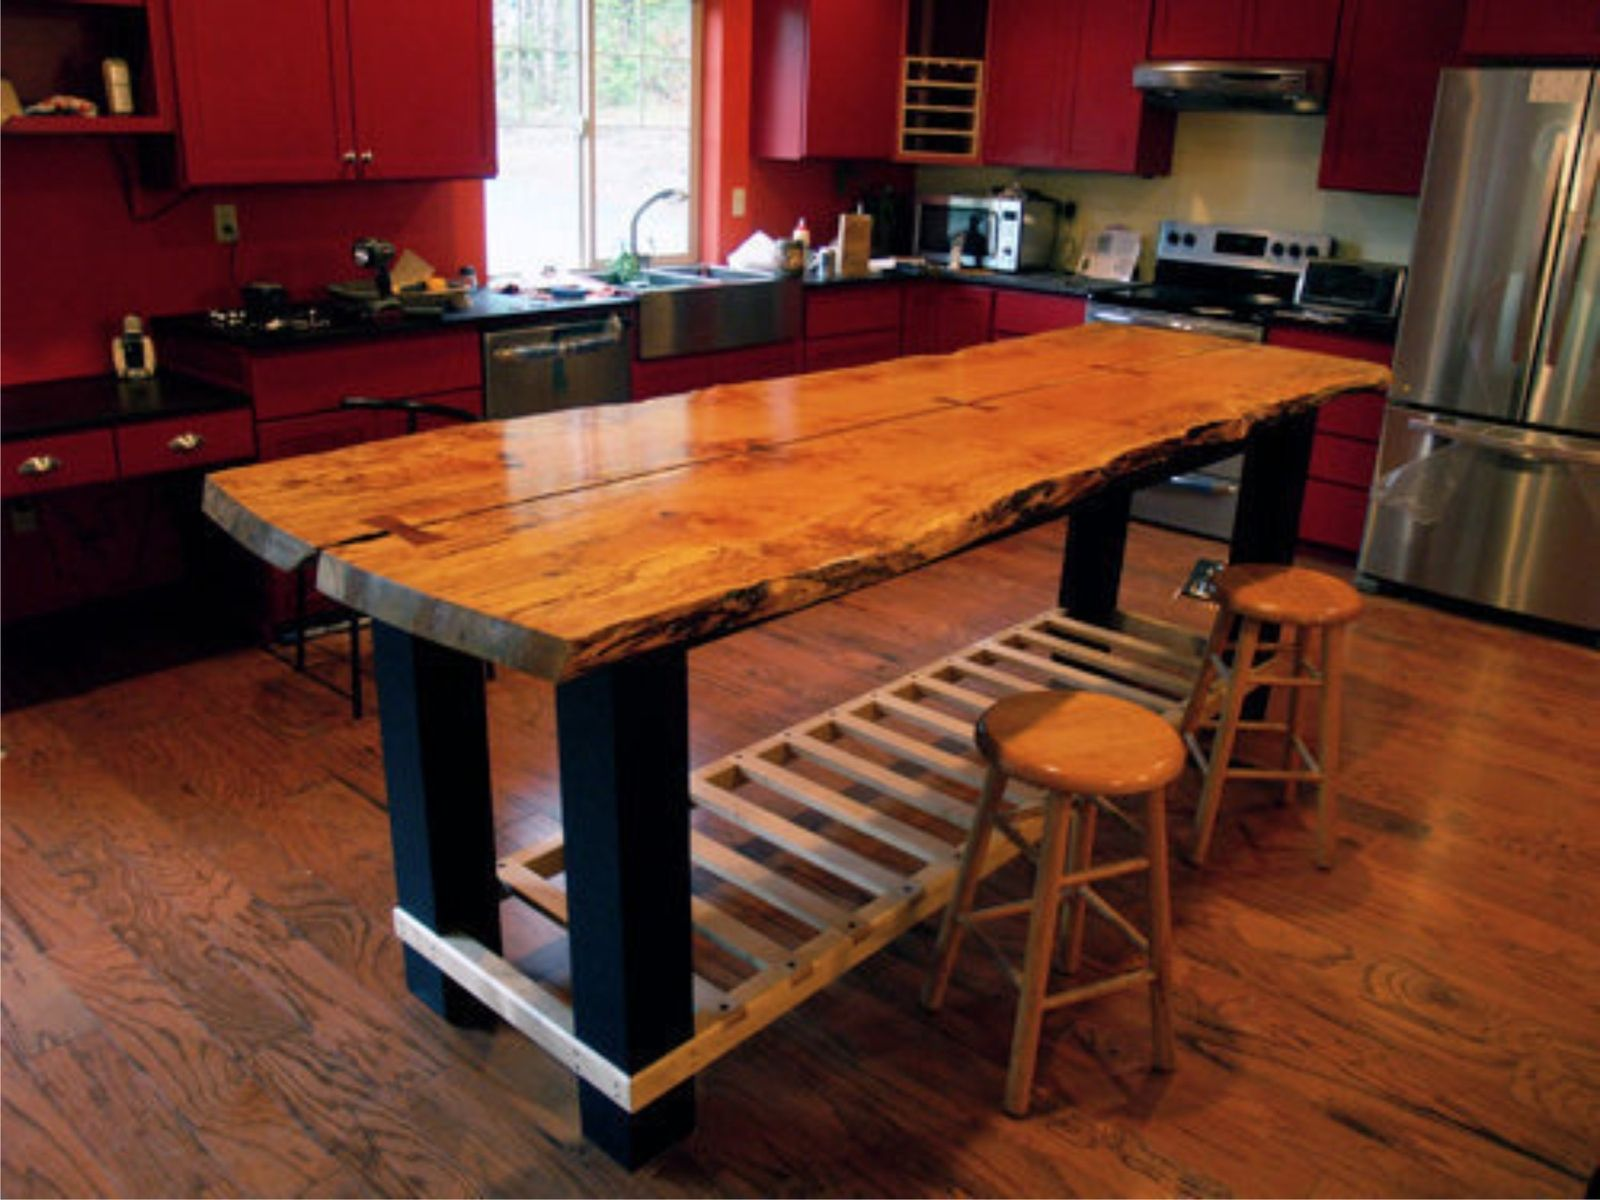 Kitchen Bars And Islands Handmade Custom Island Table By Jeffrey Coleson Art And